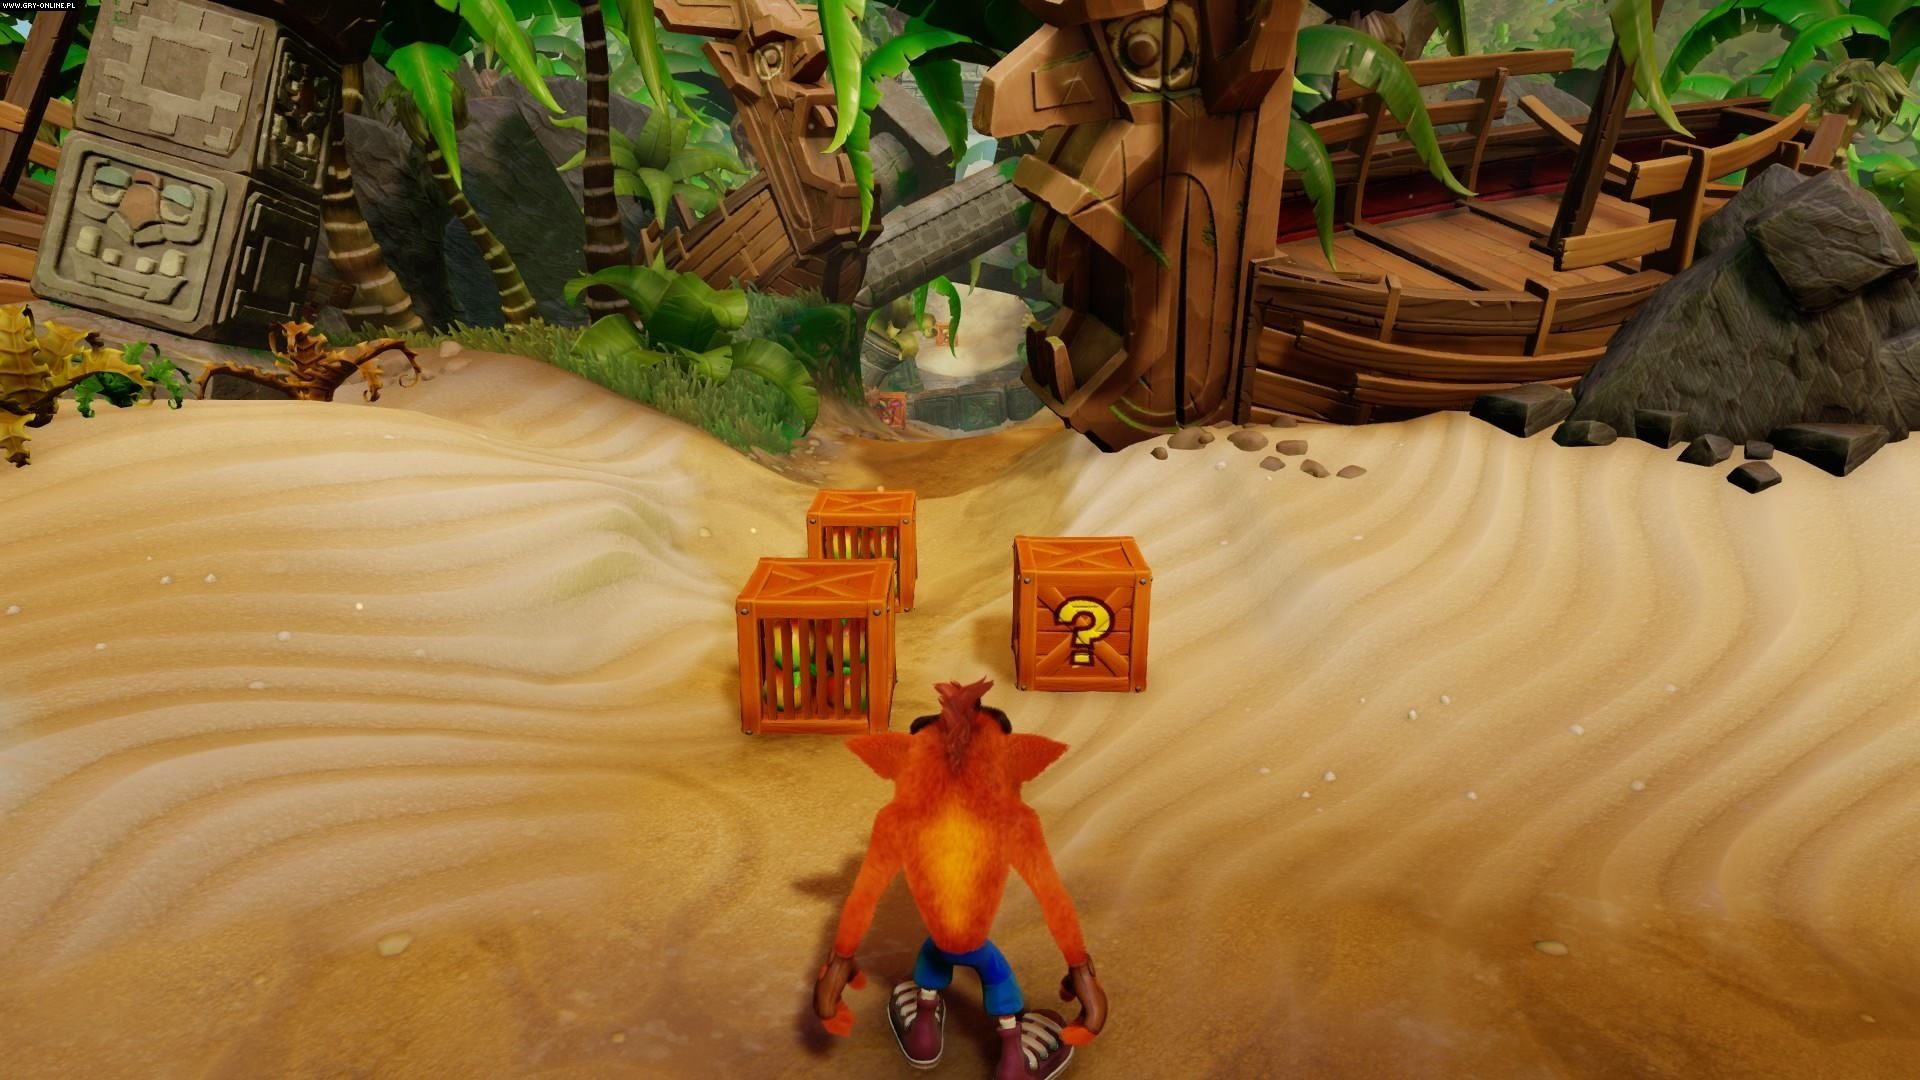 Crash Bandicoot N. Sane Trilogy PC, PS4, XONE, Switch Gry Screen 57/115, Vicarious Visions, Activision Blizzard